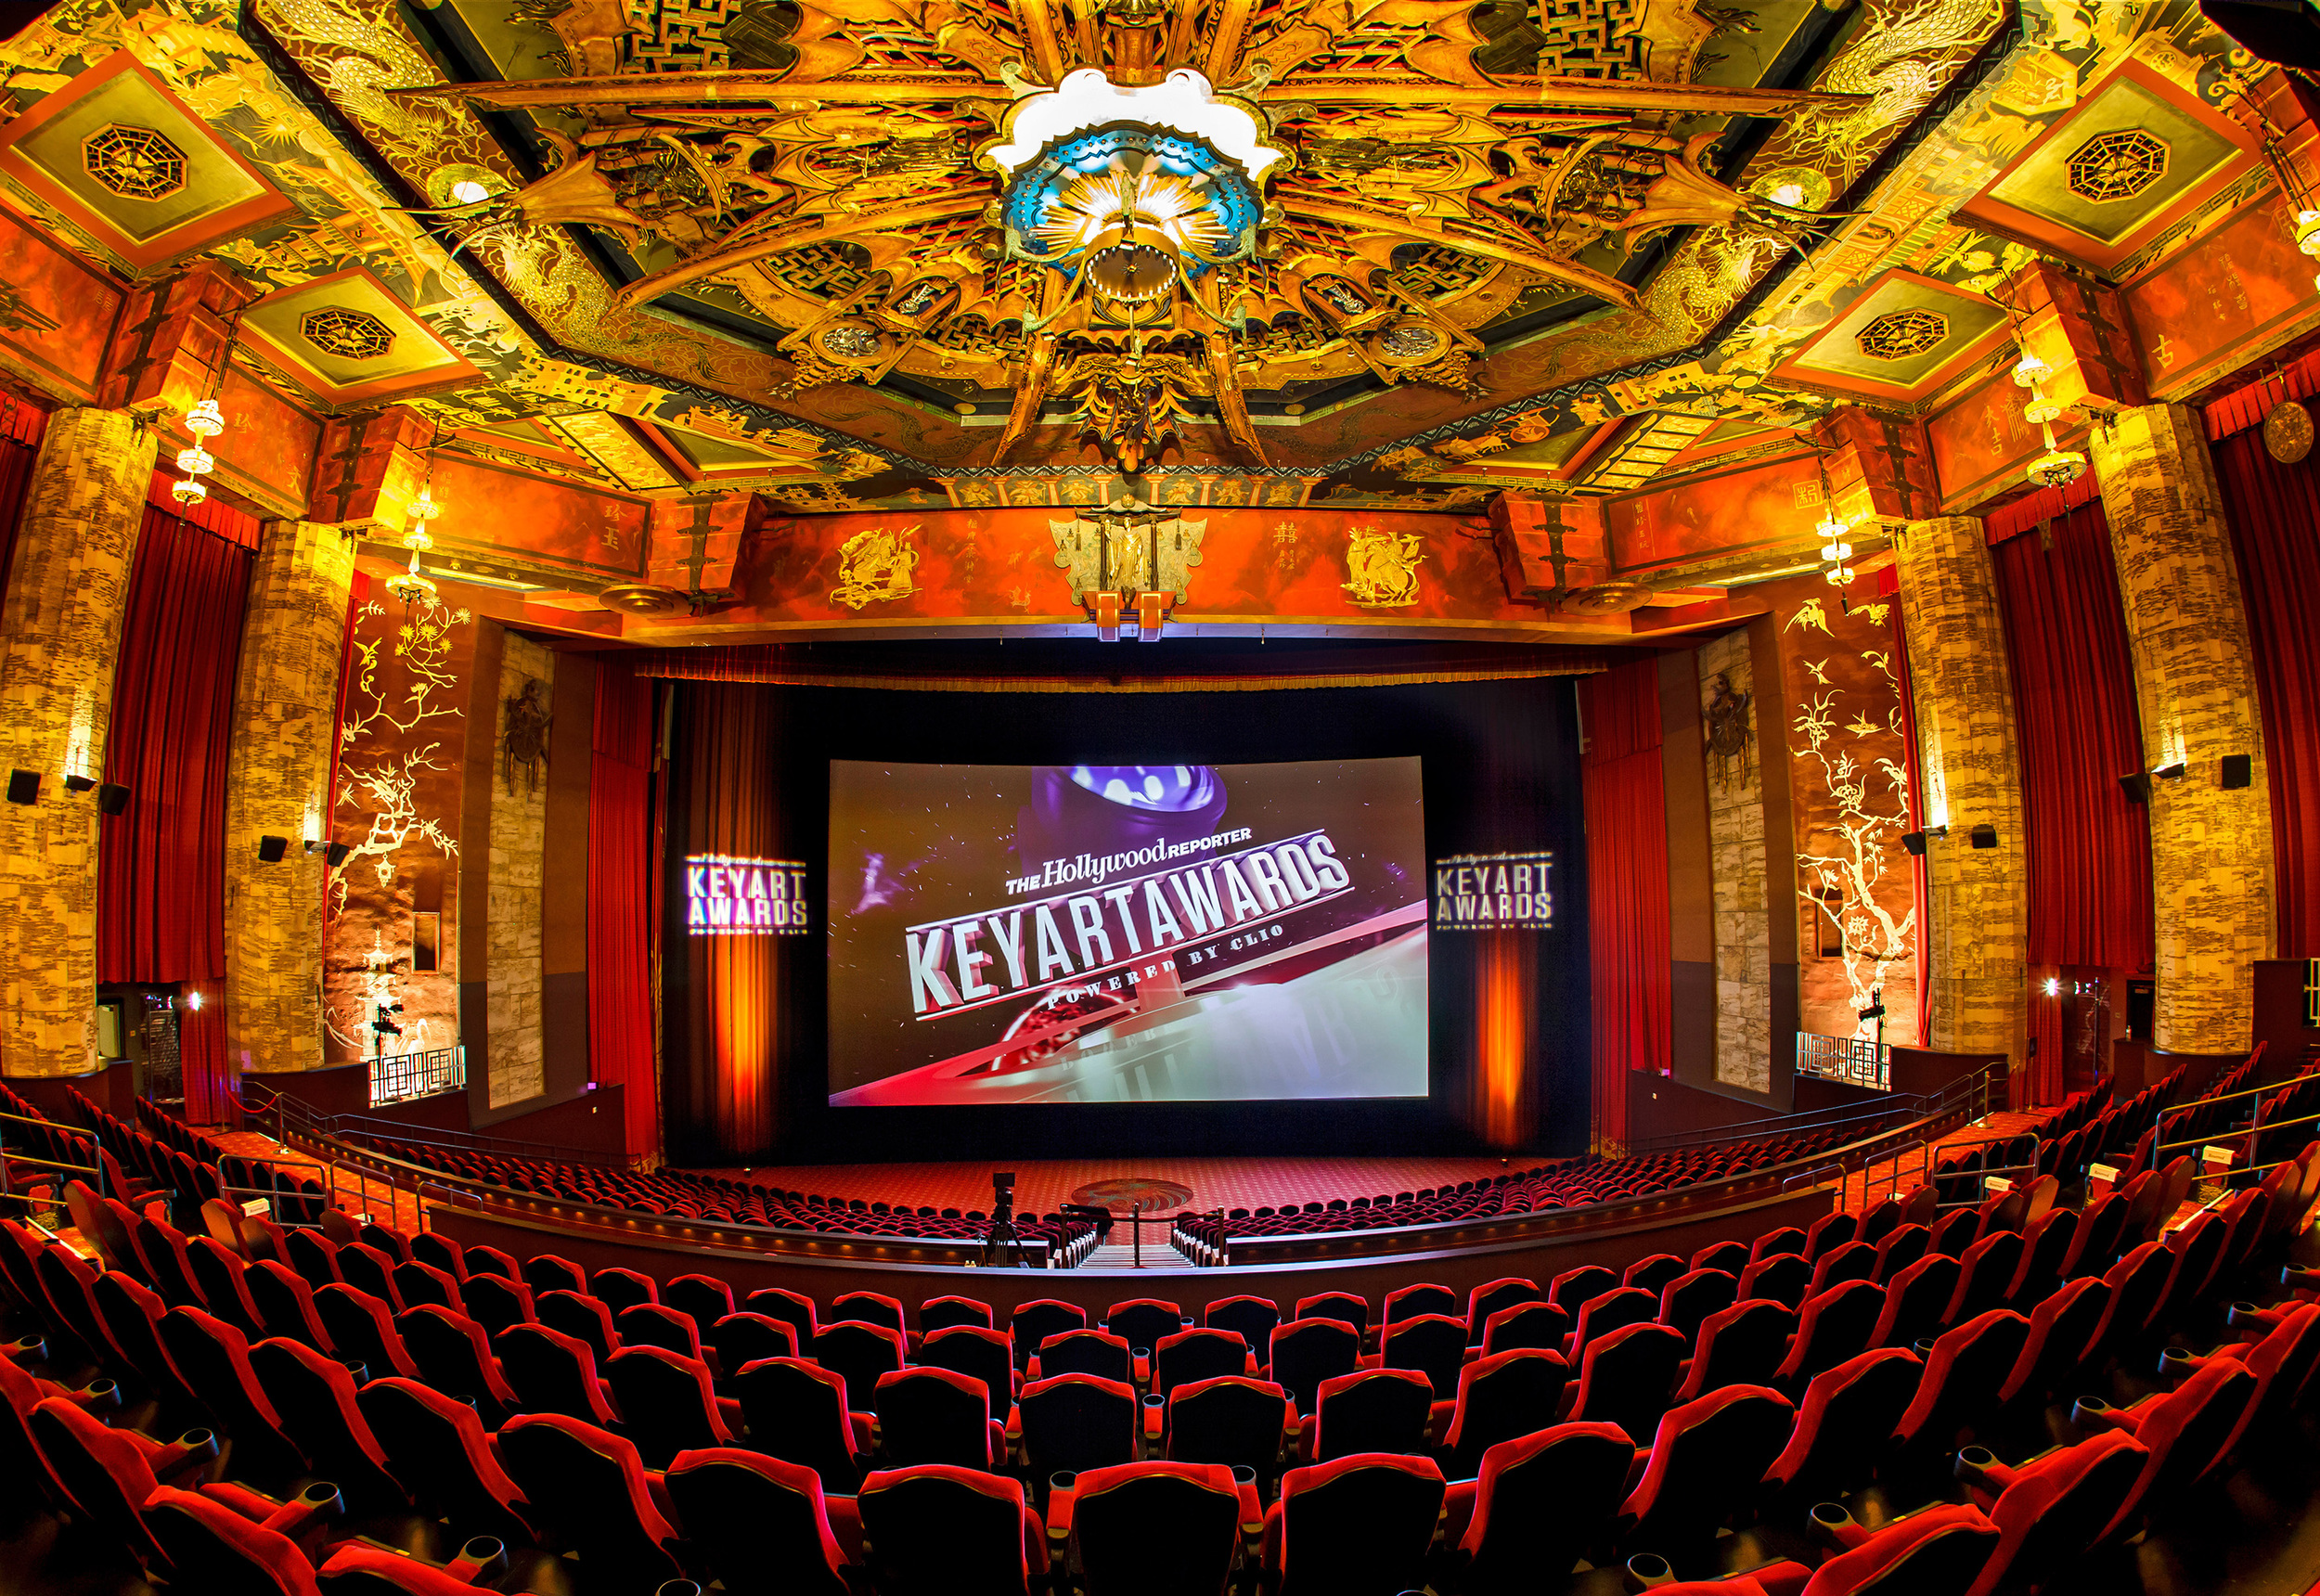 KEY ART AWARDS 2013